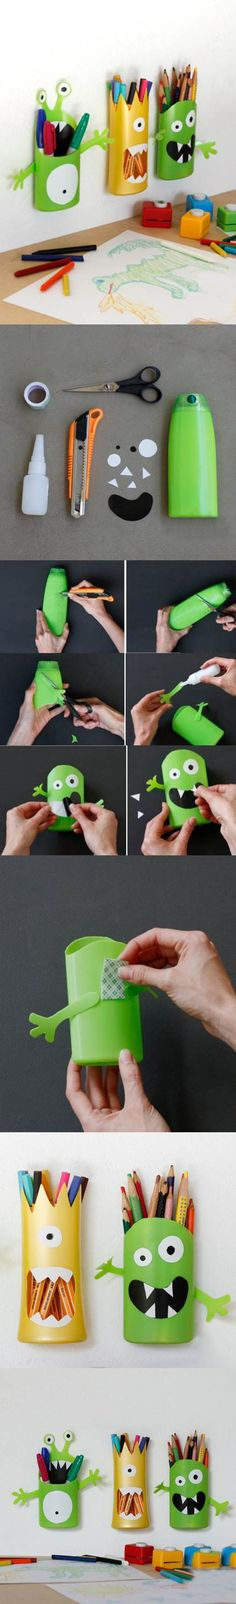 DIY Funny Pen Holder from Plastic Bottle | iCreativeIdeas.com Like Us on Facebook ==> www.facebook.com/...